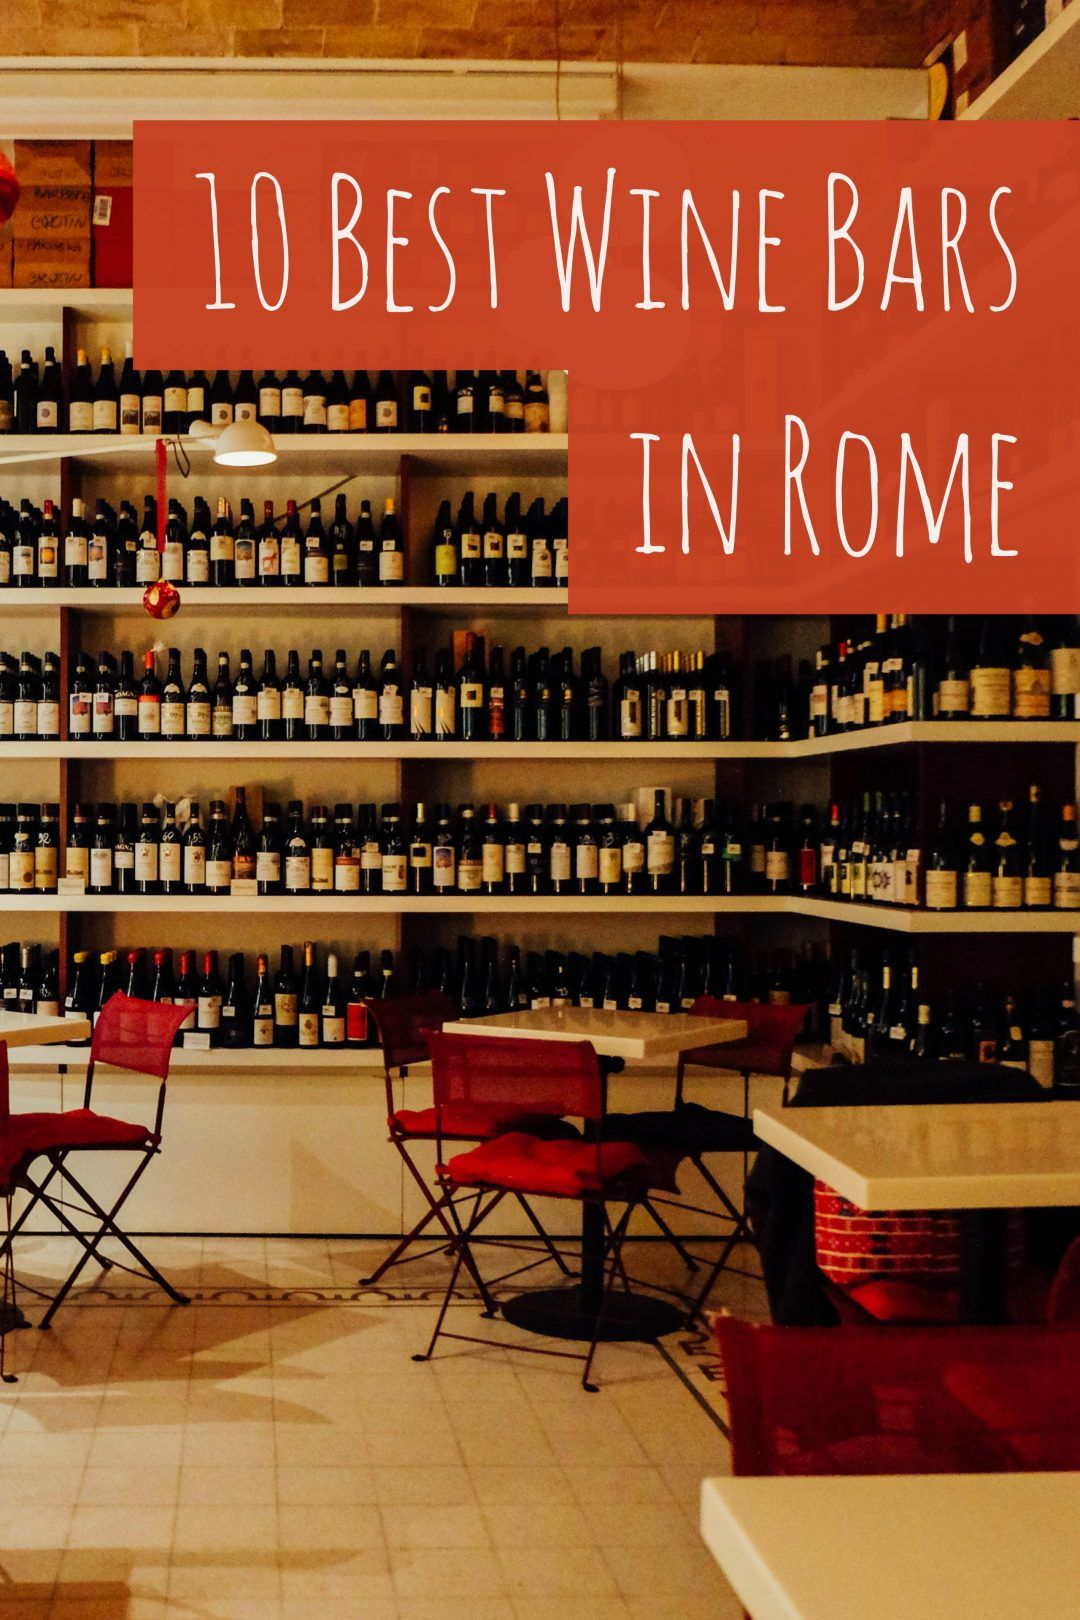 Where To Find The Best Wine Bars In Rome Italy Wine Bar Best Bars In Rome Italy Wine